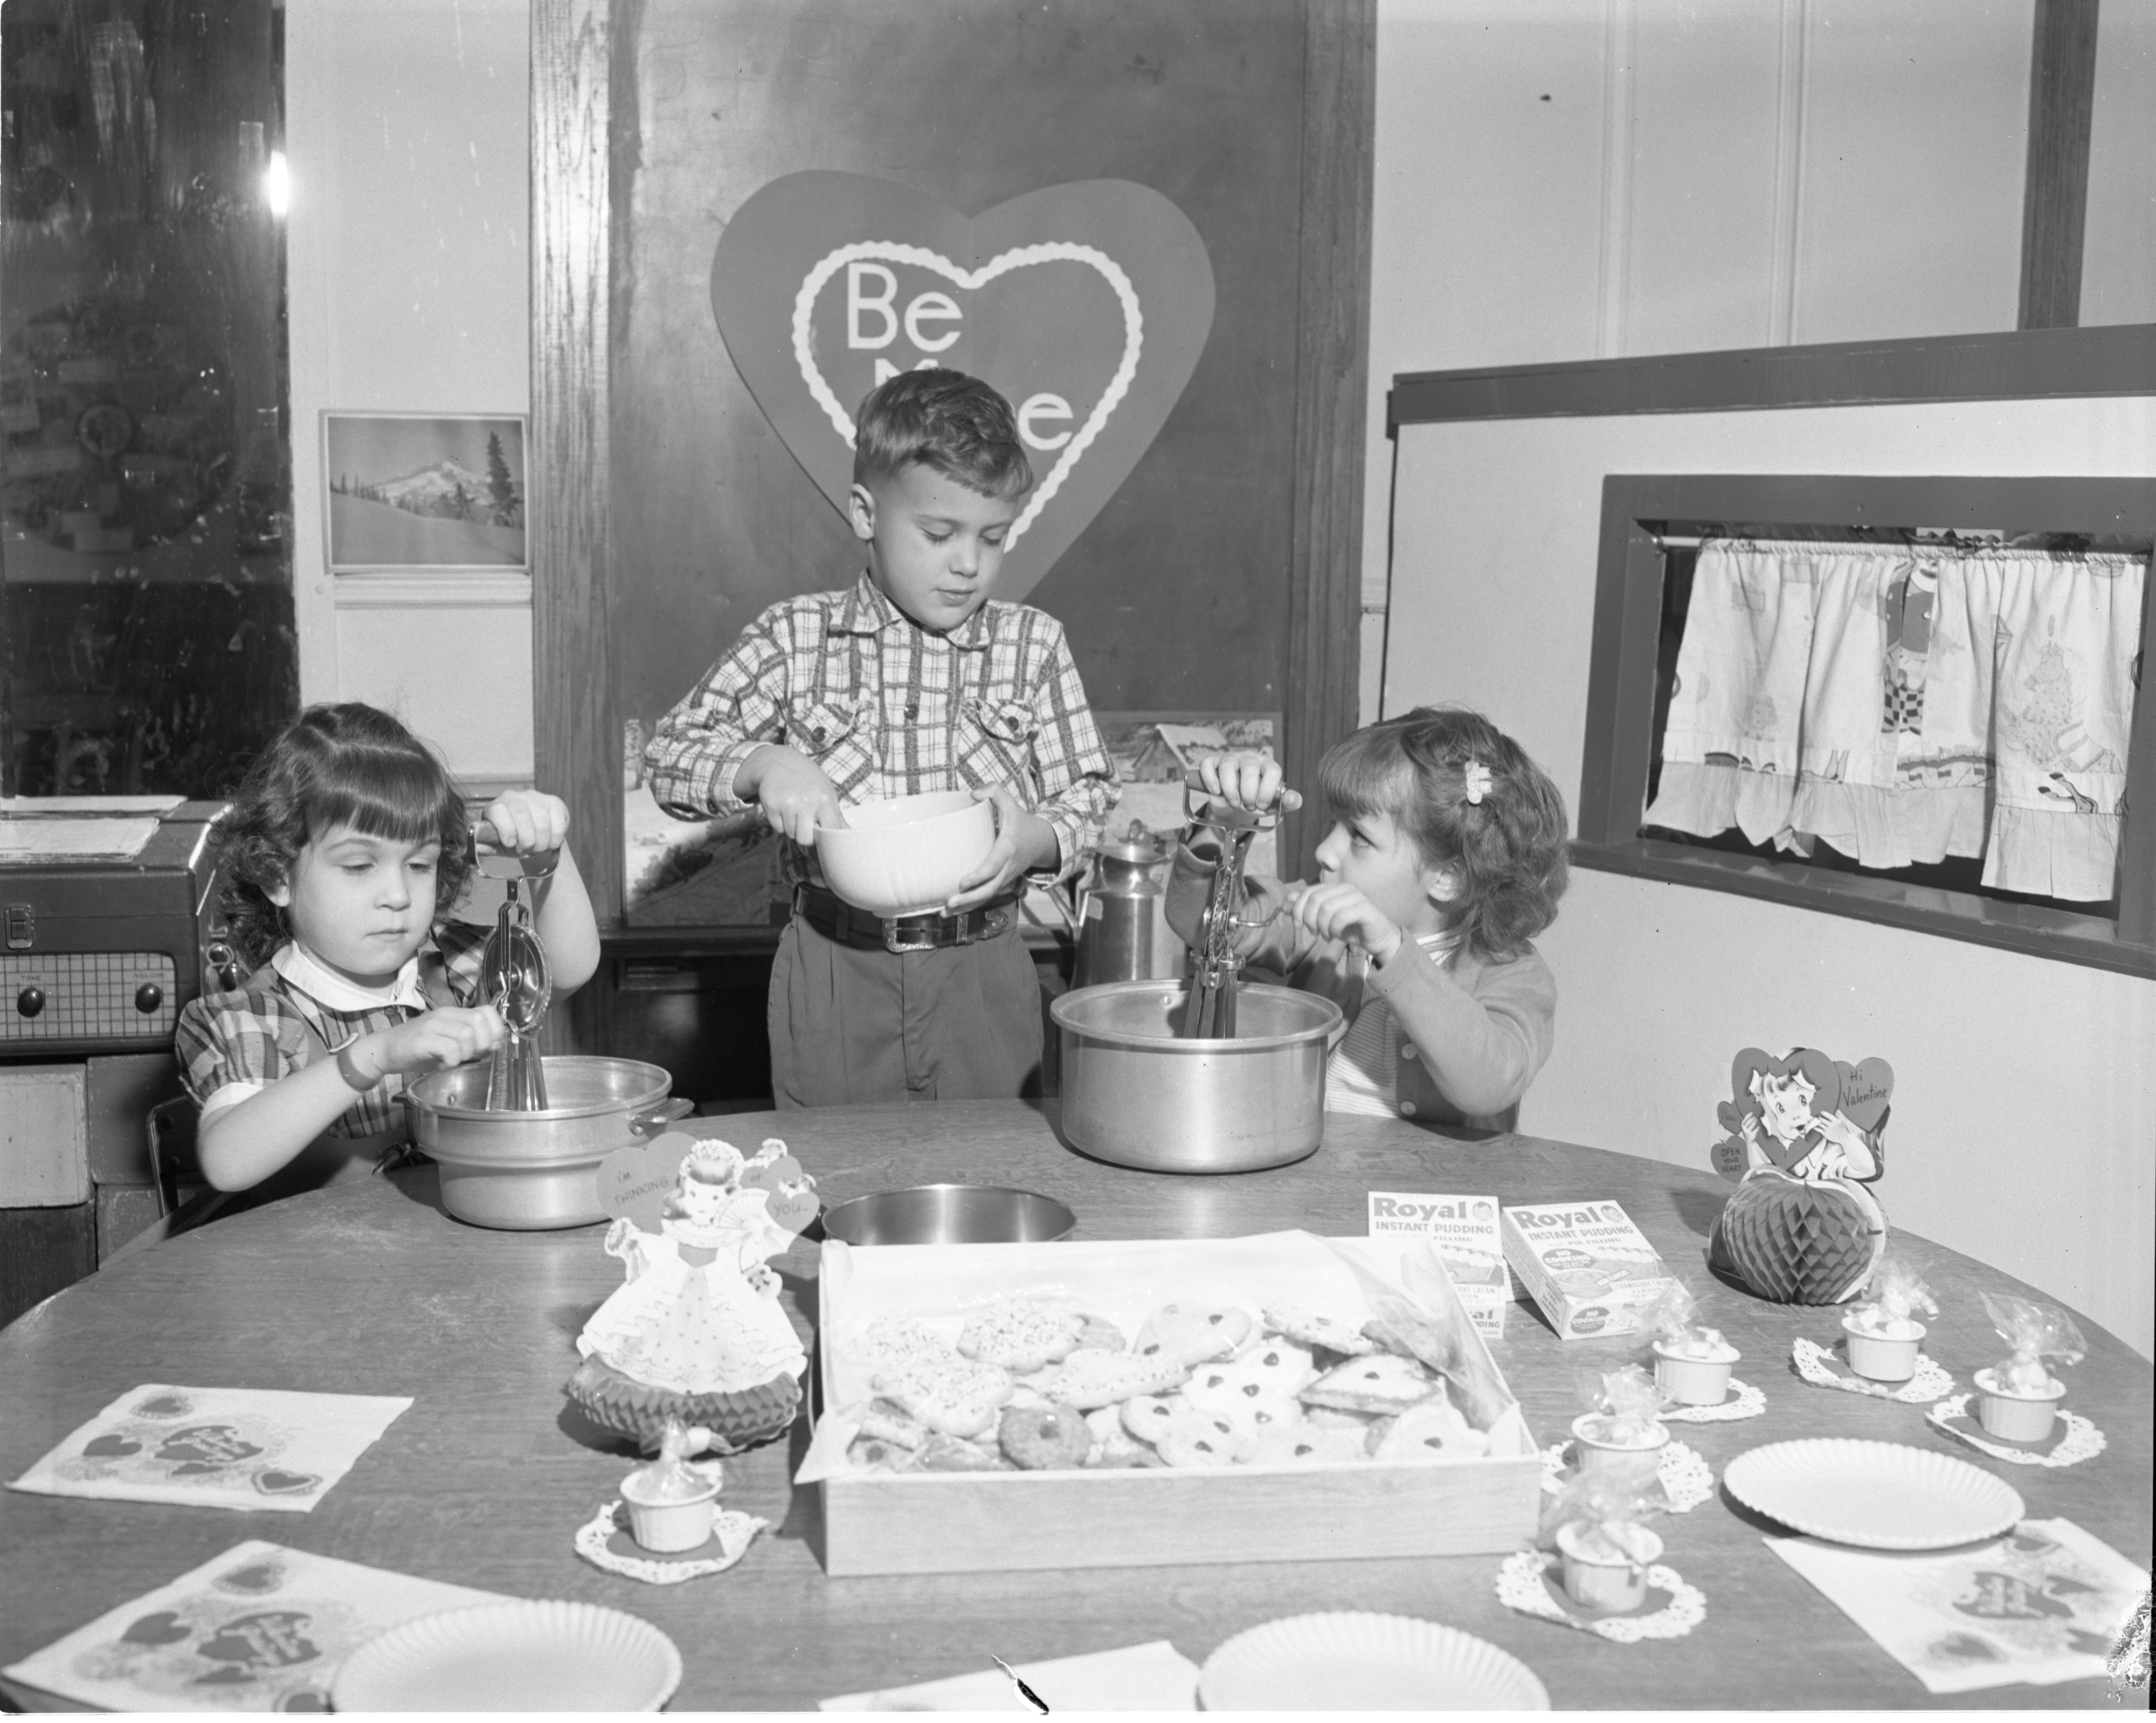 Bach School Kindergartners Make Pudding For Valentines Day - February 14, 1956 image